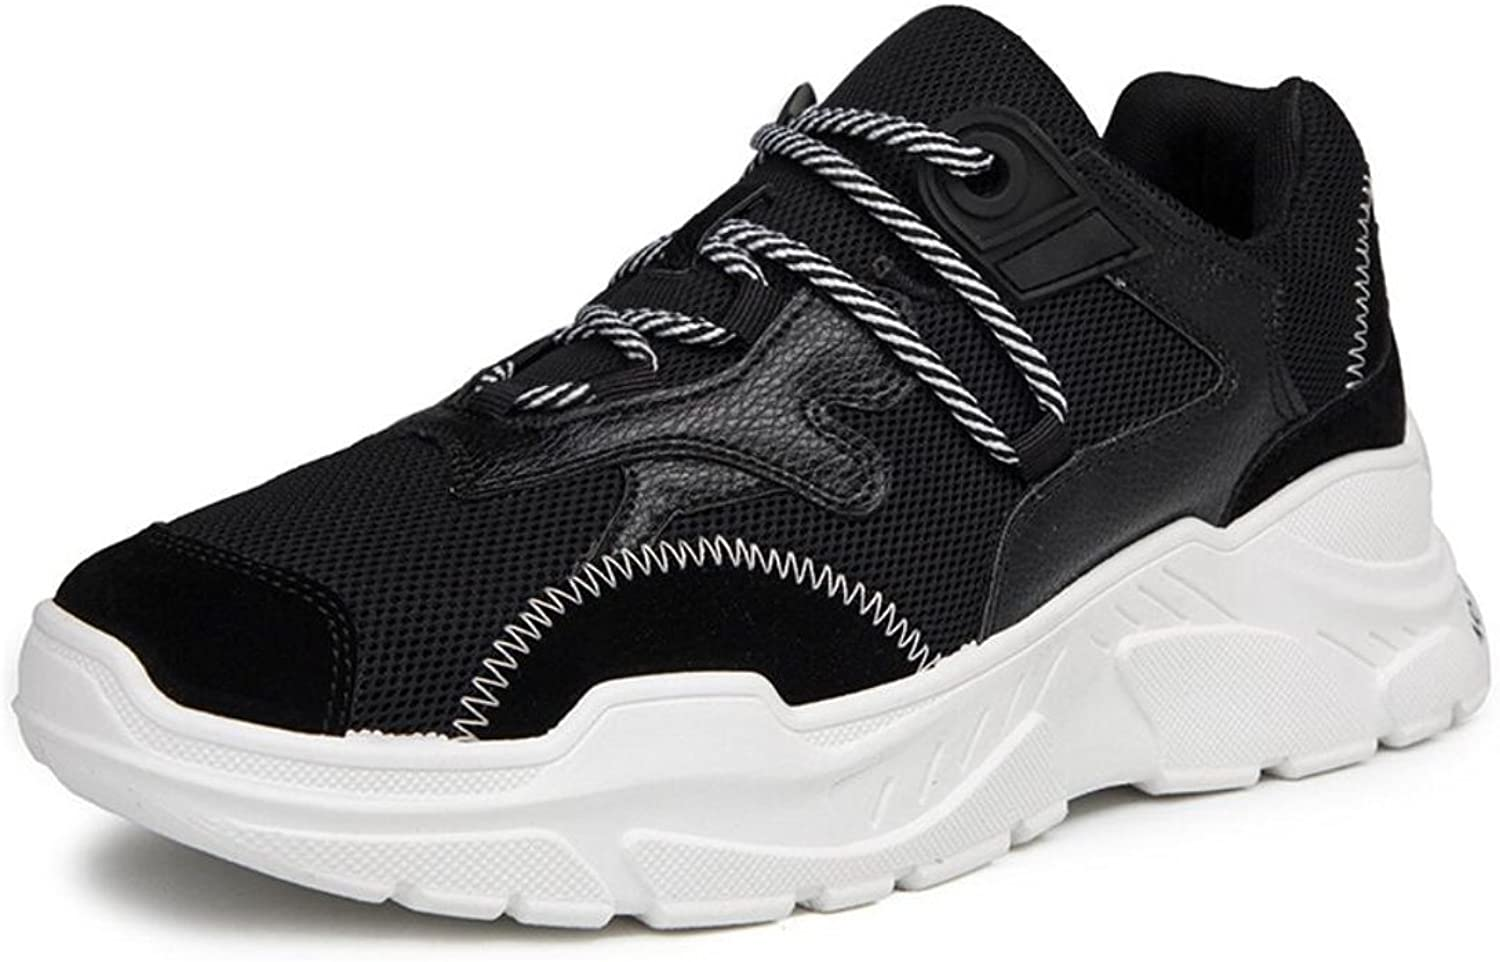 DANDANJIE Men's Sneakers Retro Running shoes Sports shoes 2018 Spring and Autumn New